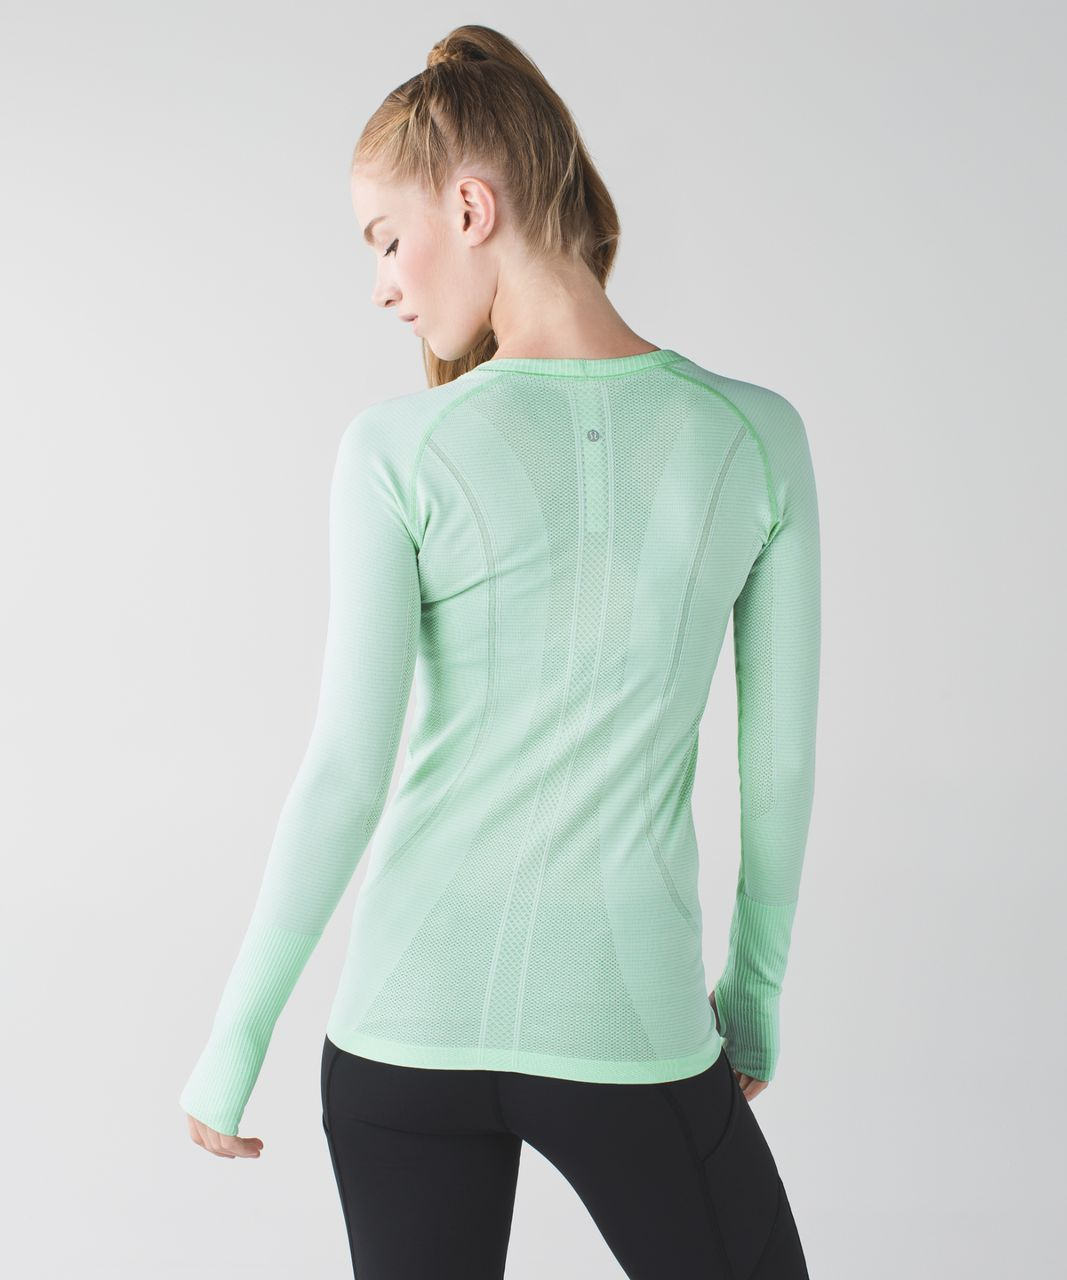 Lululemon Swiftly Tech Long Sleeve Crew - Heathered Pistachio